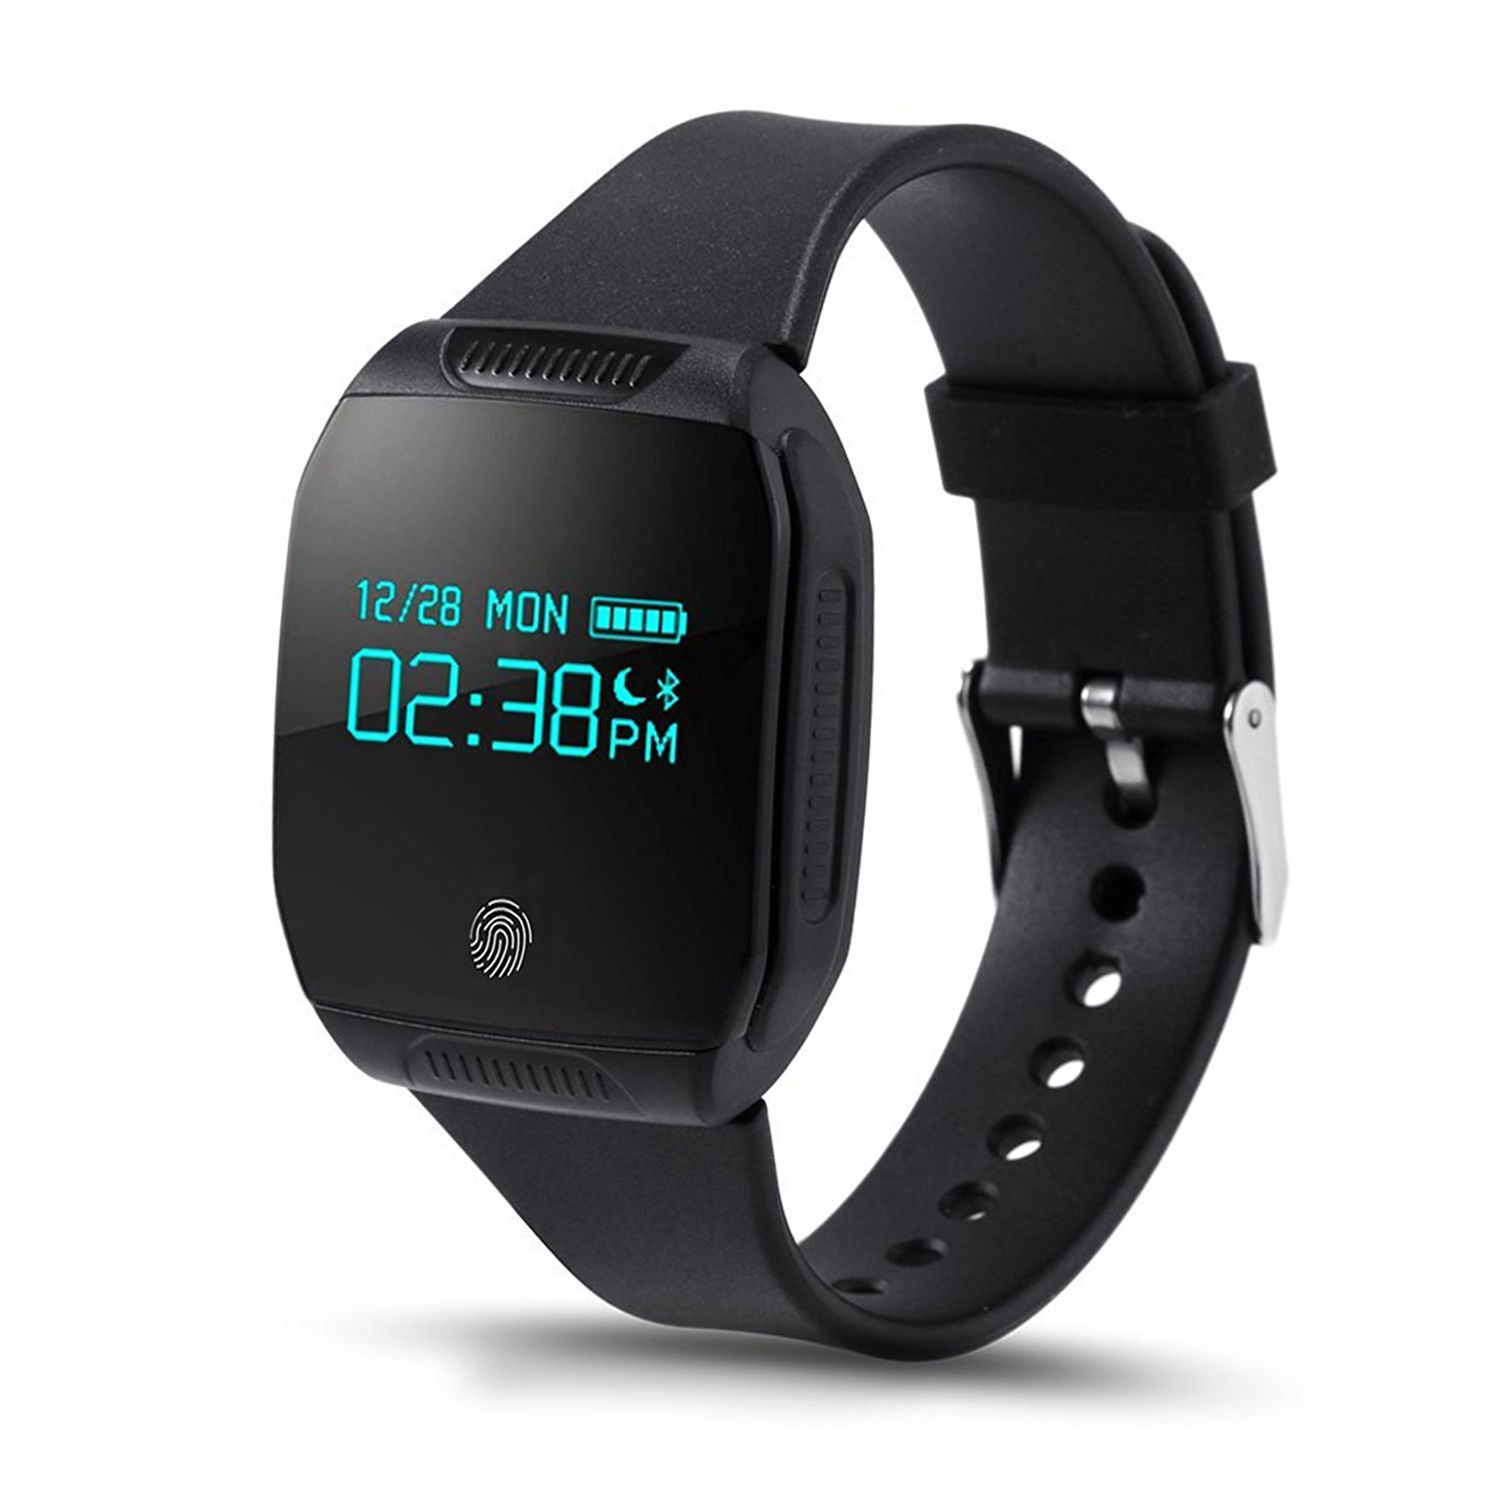 buyfitbit main watches silver tracker fitbit black at tracking rsp heart small rate pdp online and charge fitness wristband